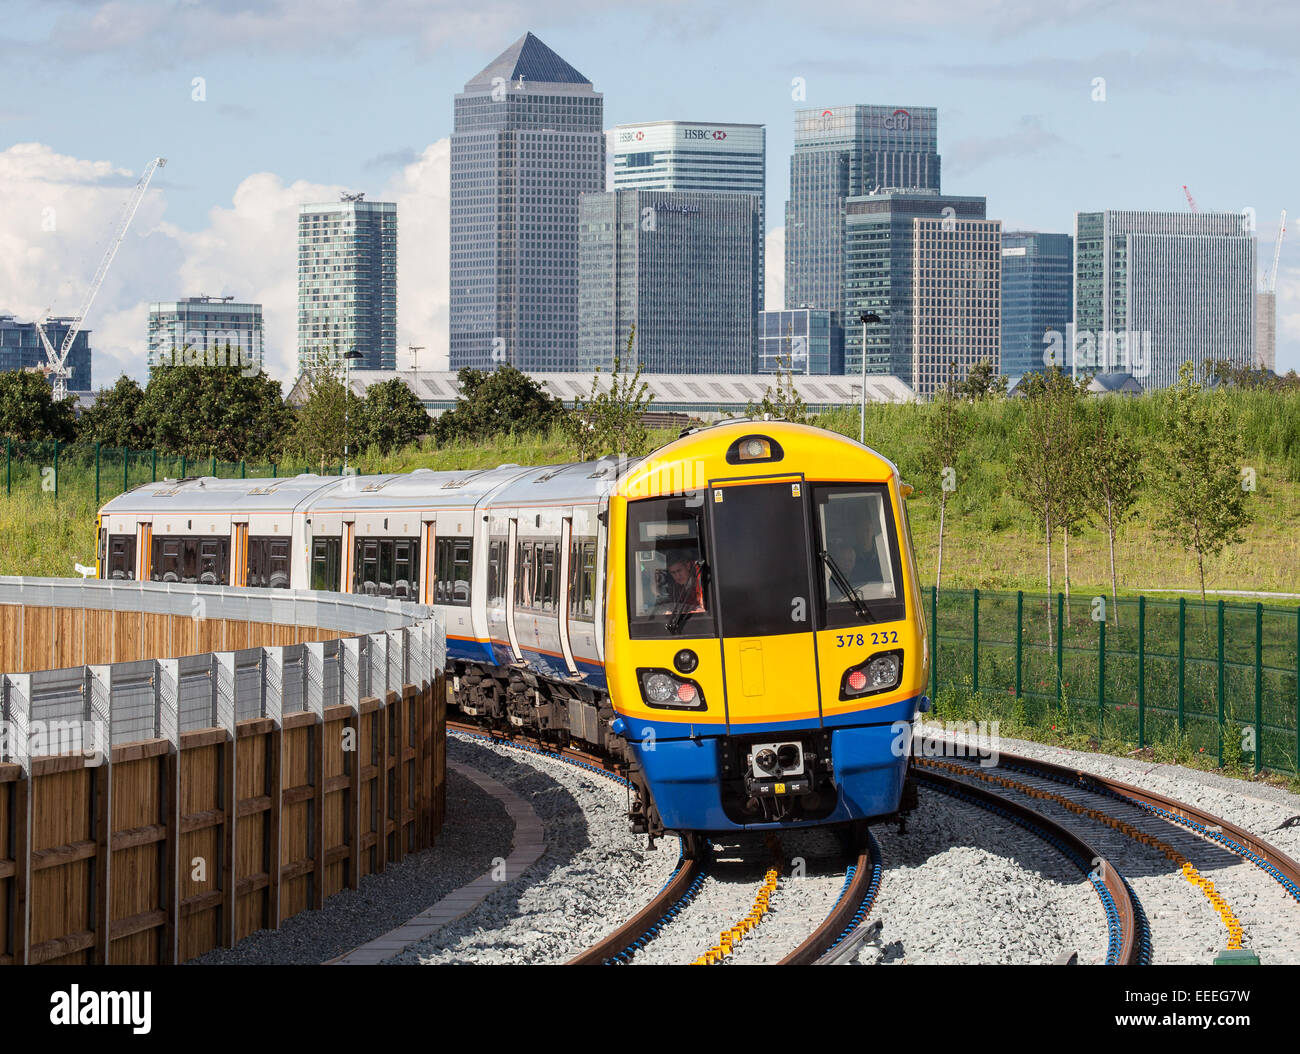 London Overground ELLP - phase 2 : Le premier train d'essai sur la piste Photo Stock